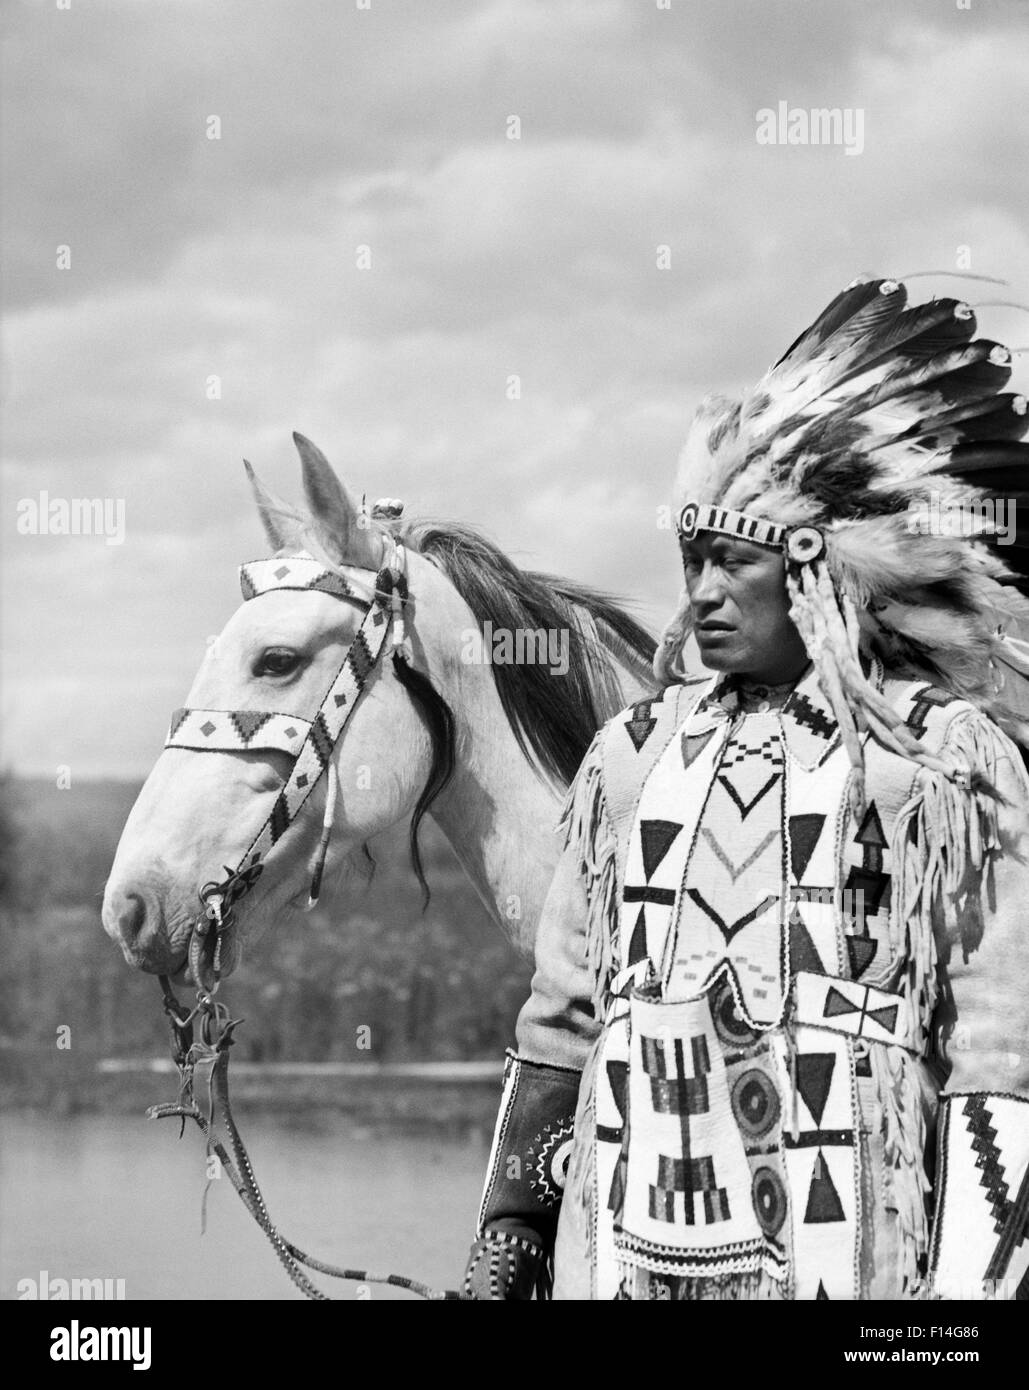 1920s portrait native american indian chief full feather